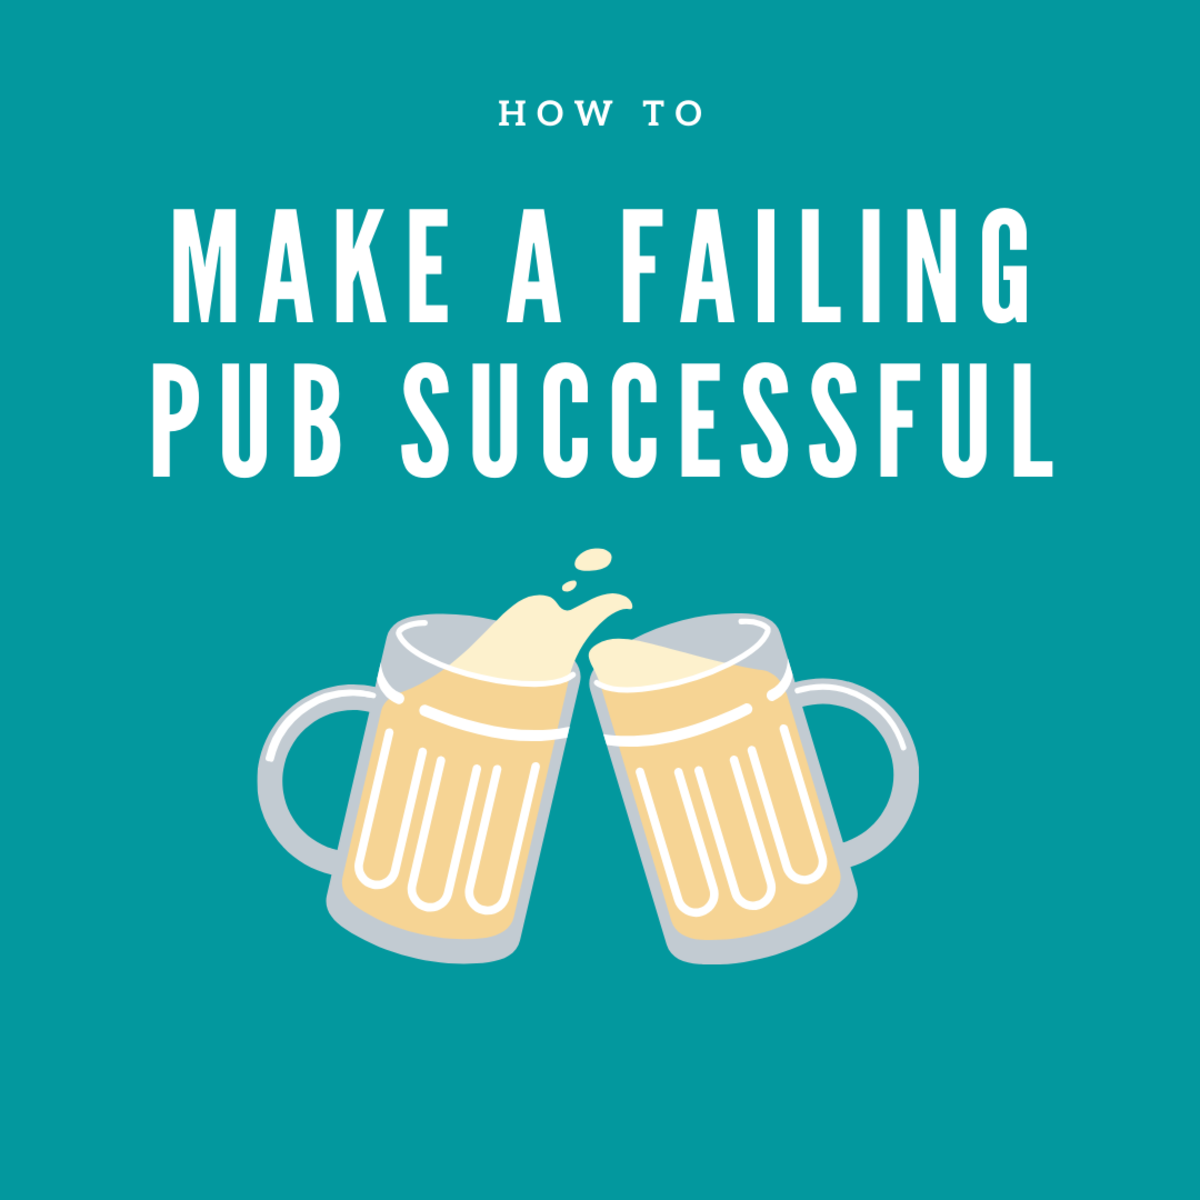 5 Tips on How to Make a Failing Pub Successful